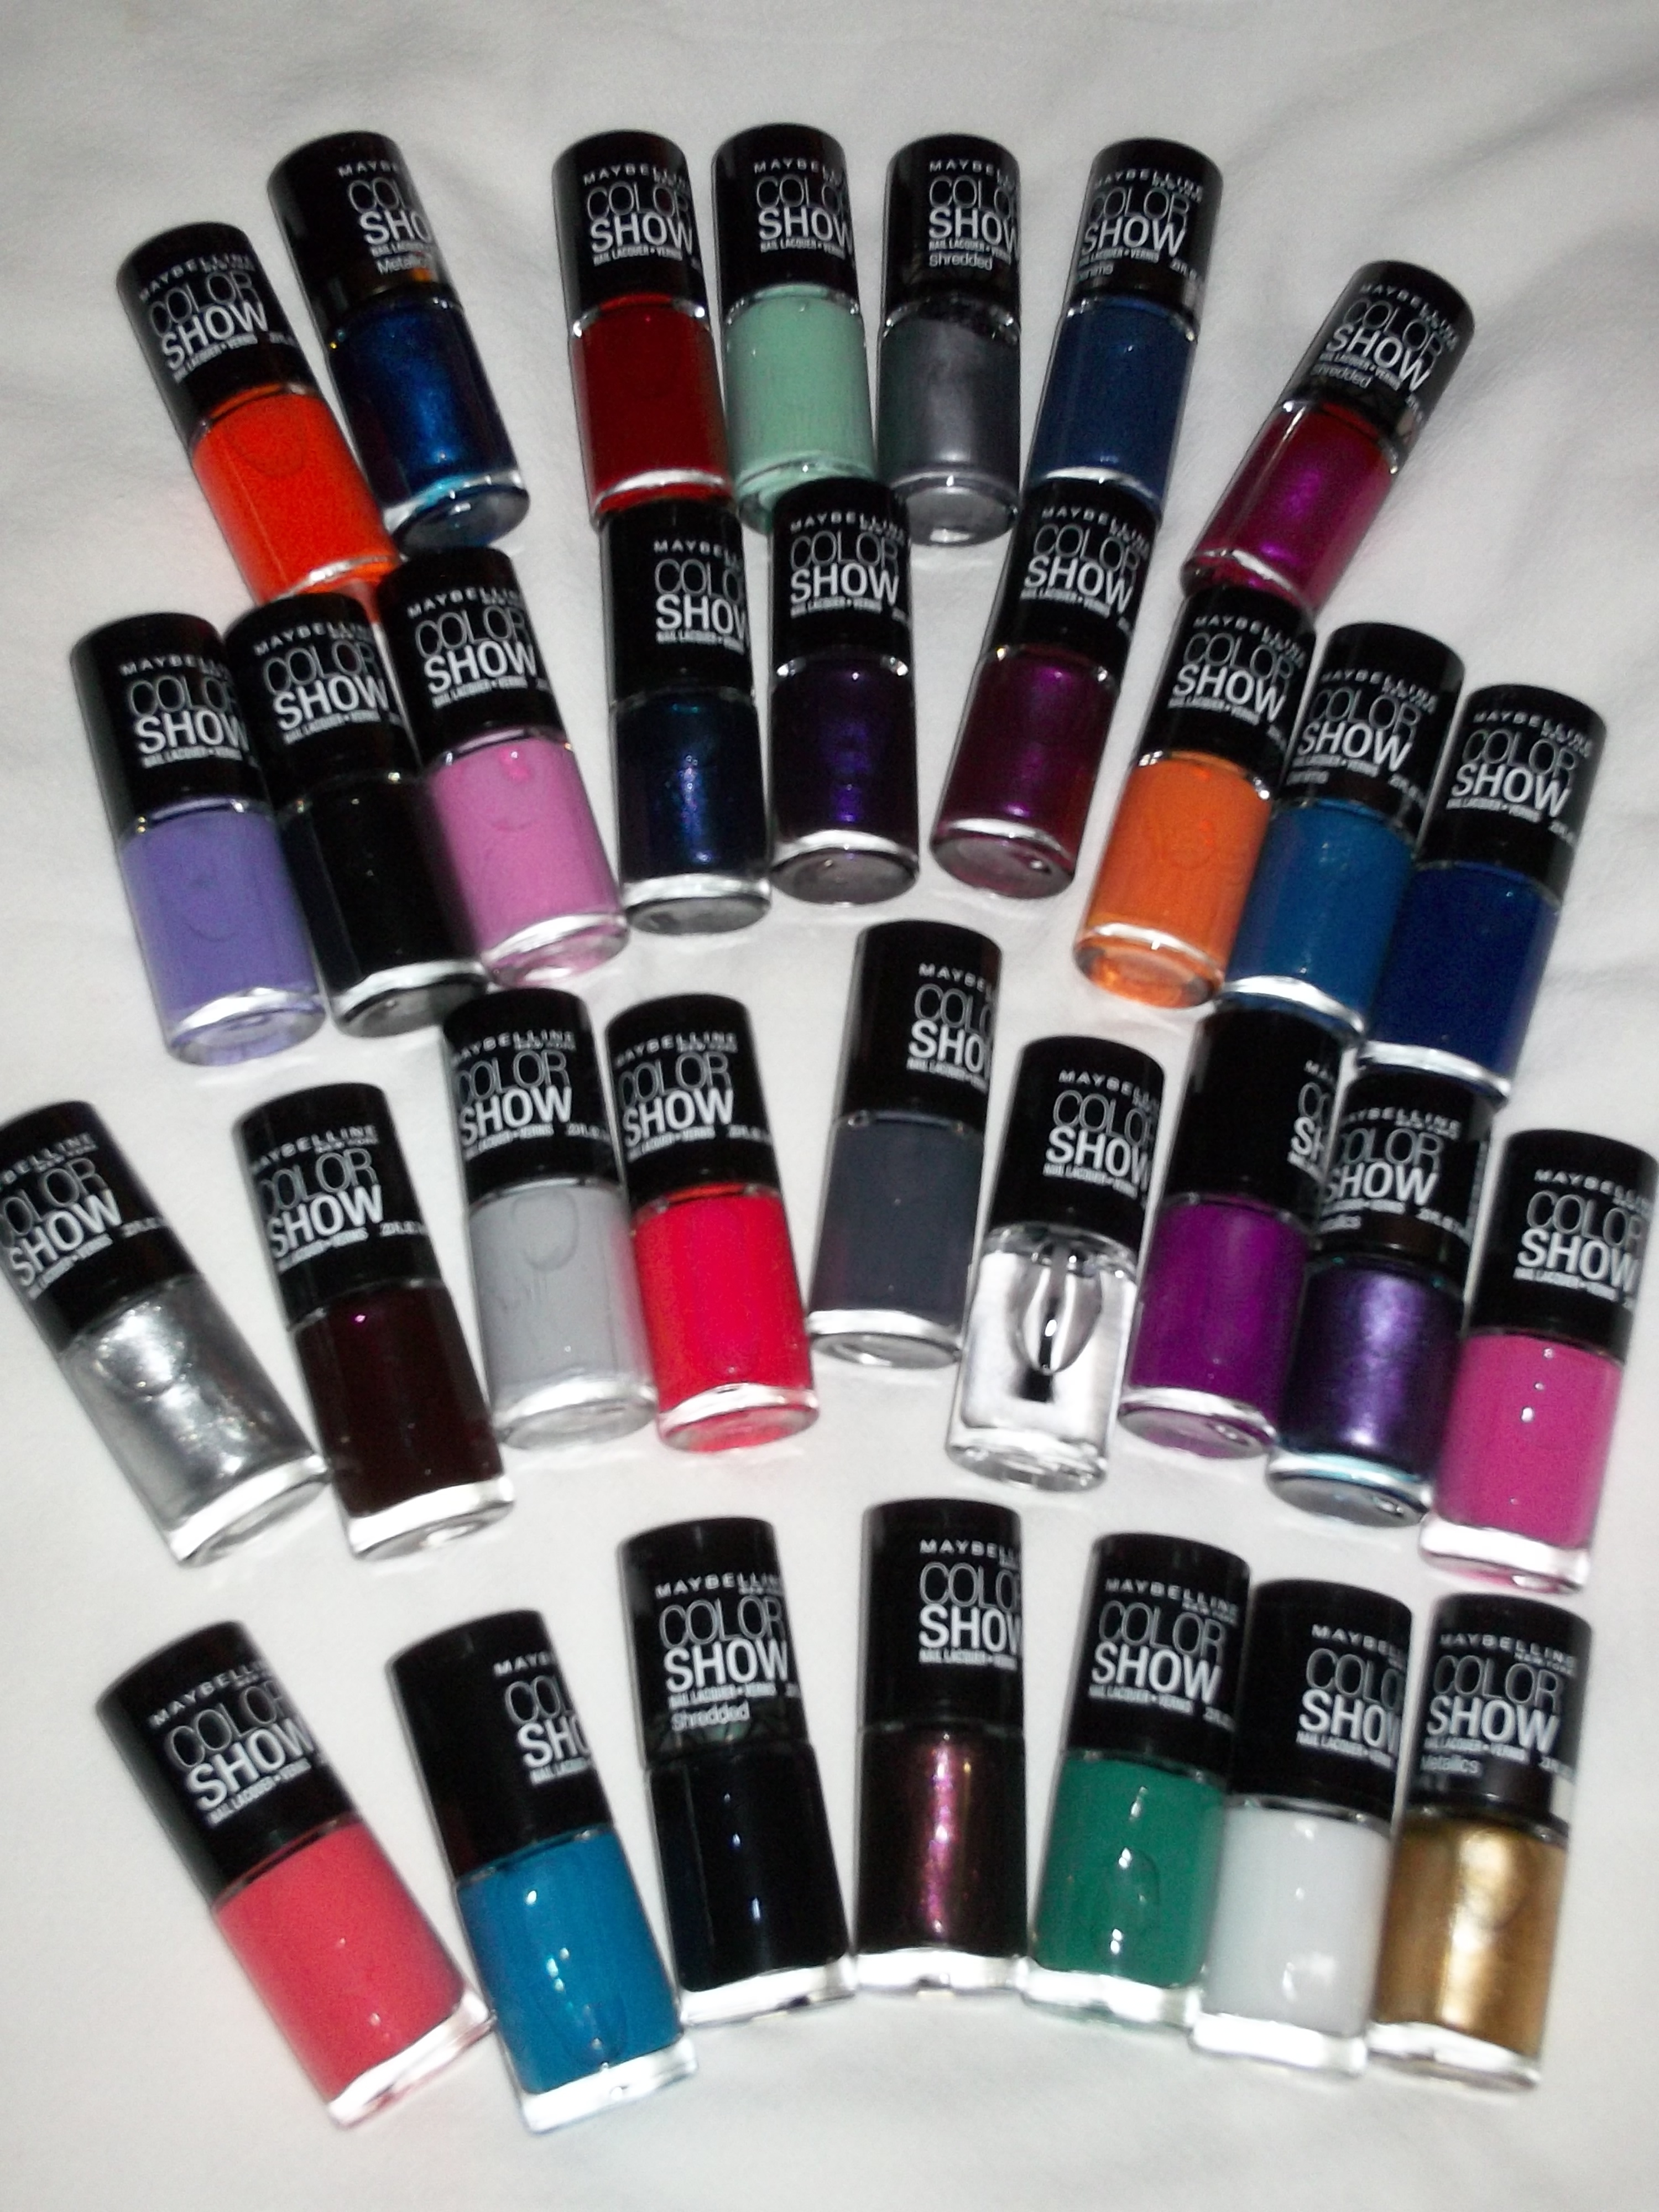 Maybelline Color Show Nail Lacquer: All You Need For A